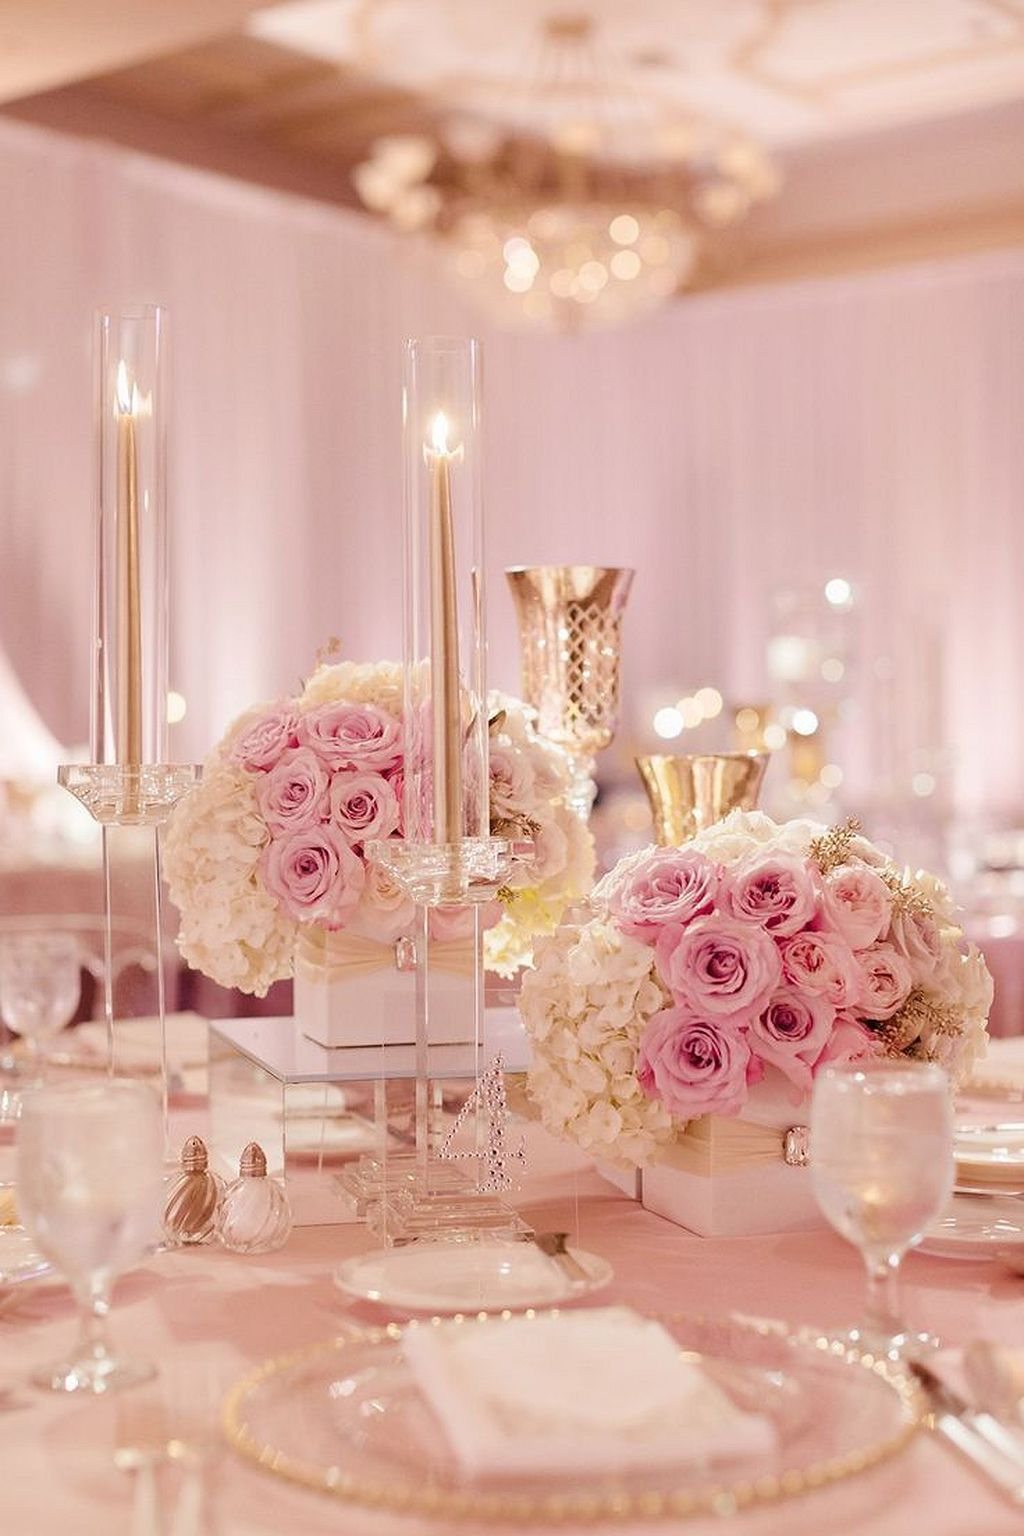 30 Best Pink and Gold Wedding Color Ideas   Gold wedding colors ...